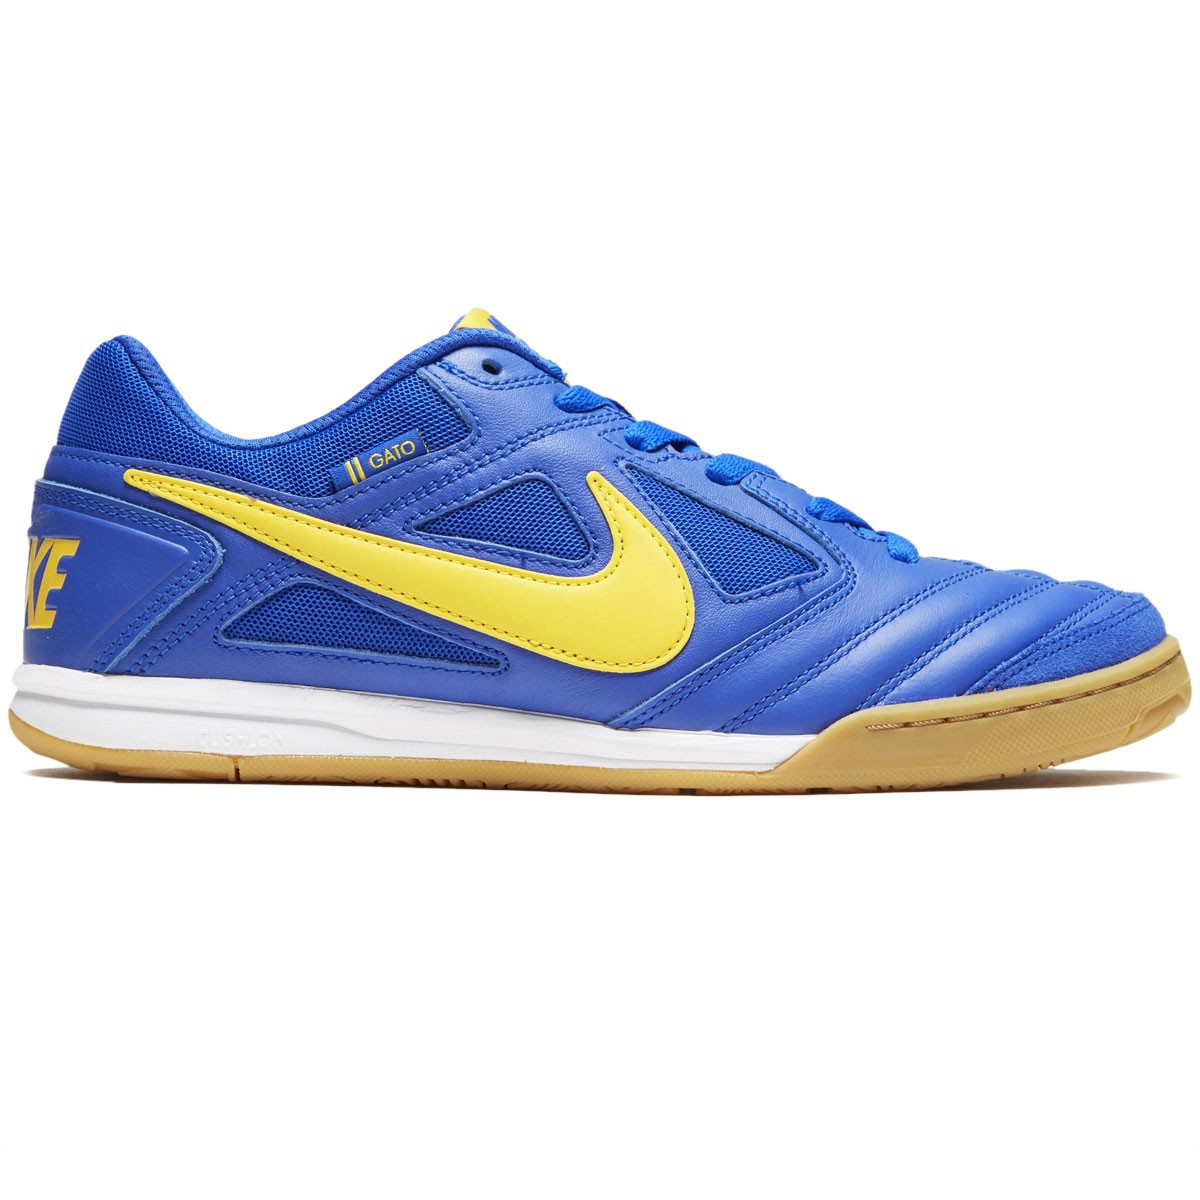 hot sales fd1c9 af3b0 Nike SB Gato Shoes - Racer Blue Amarillo White - 6.5